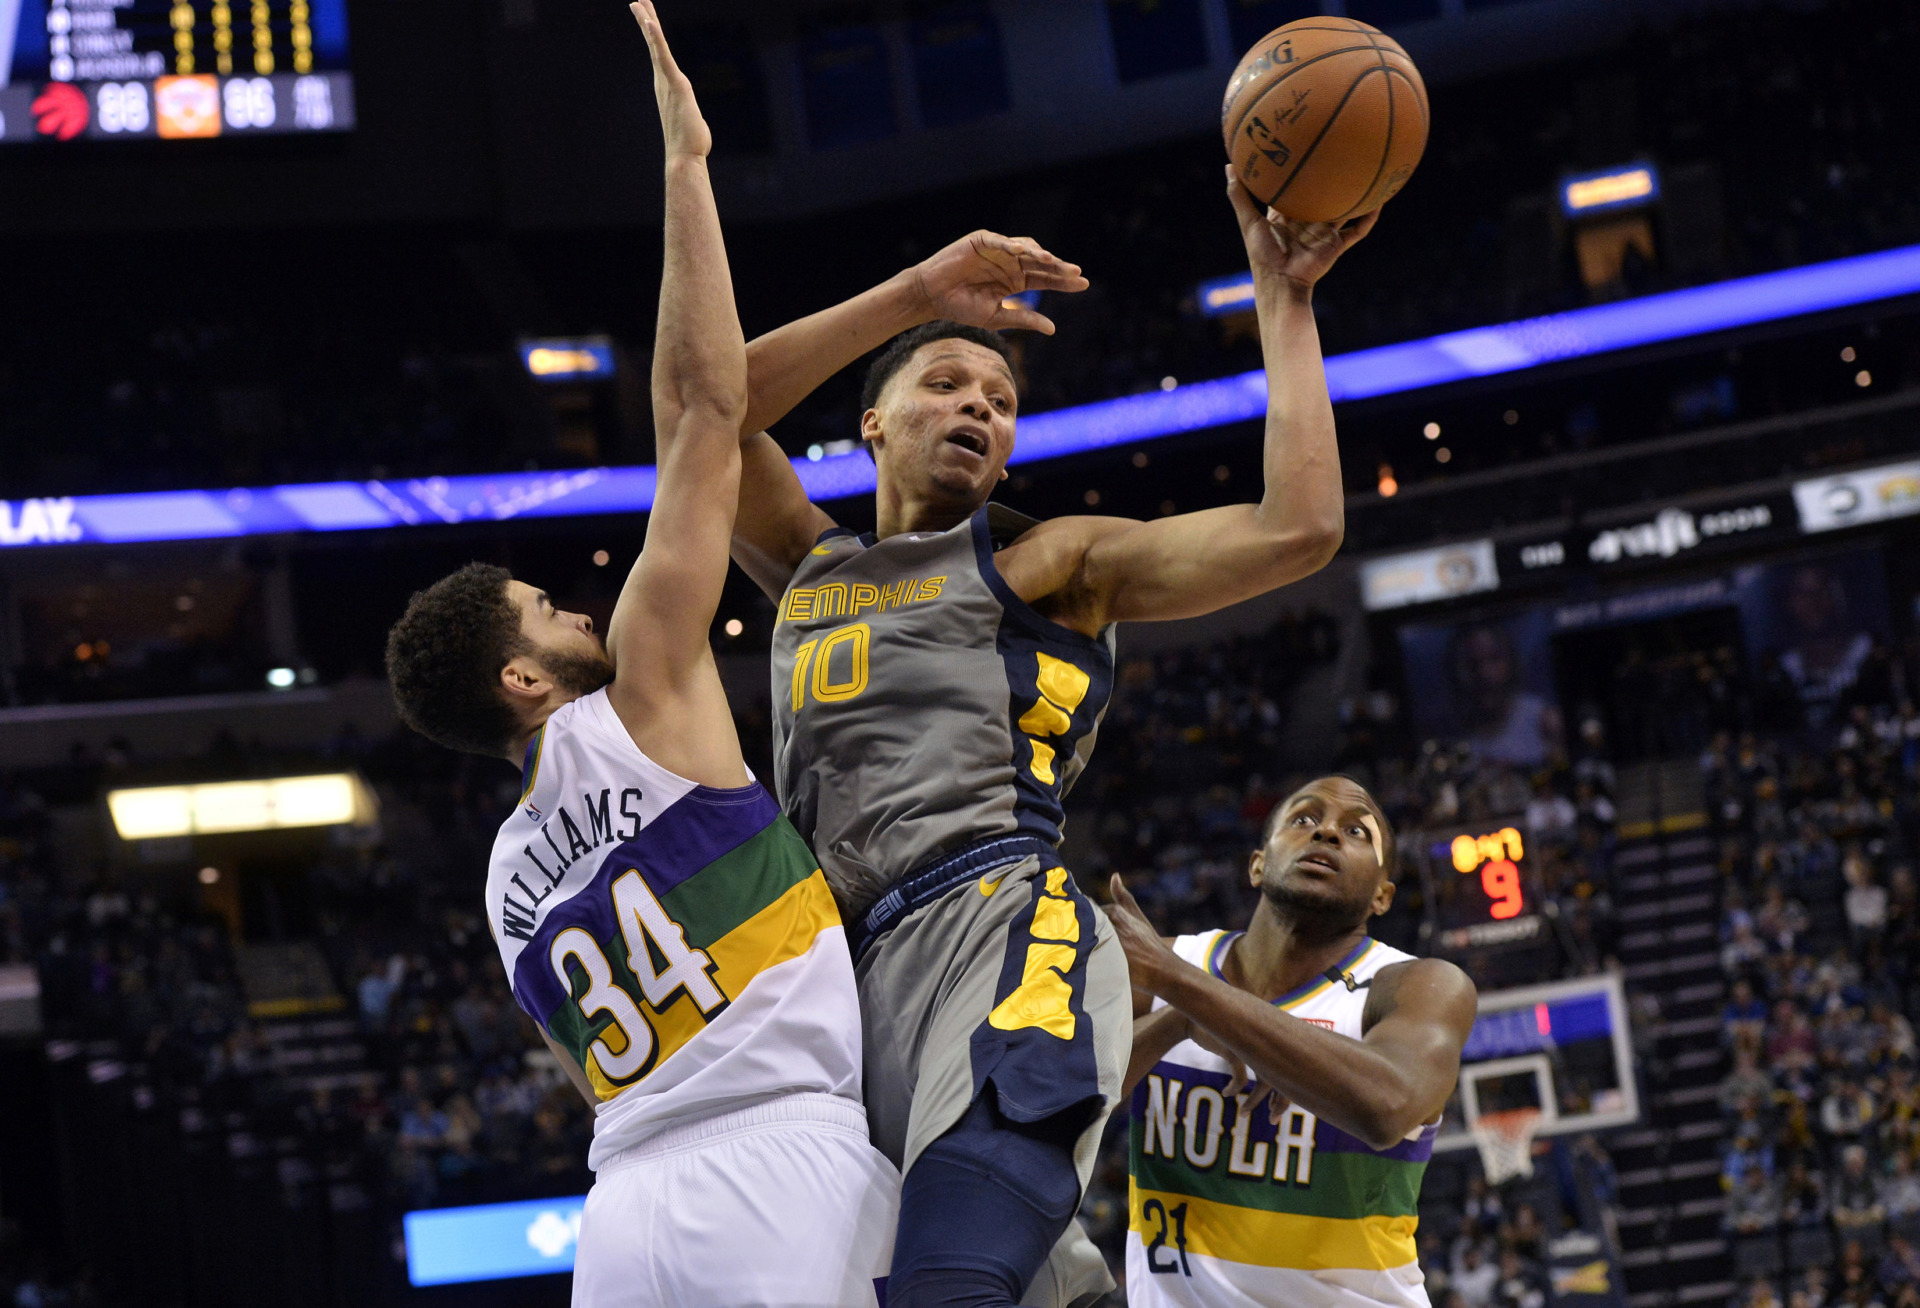 <strong>Memphis Grizzlies forward Ivan Rabb (10) handles the ball between New Orleans Pelicans guard Kenrich Williams (34) and forward Darius Miller (21) during the second half of an NBA game Saturday, Feb. 9, 2019, in Memphis.</strong> (AP Photo/Brandon Dill)